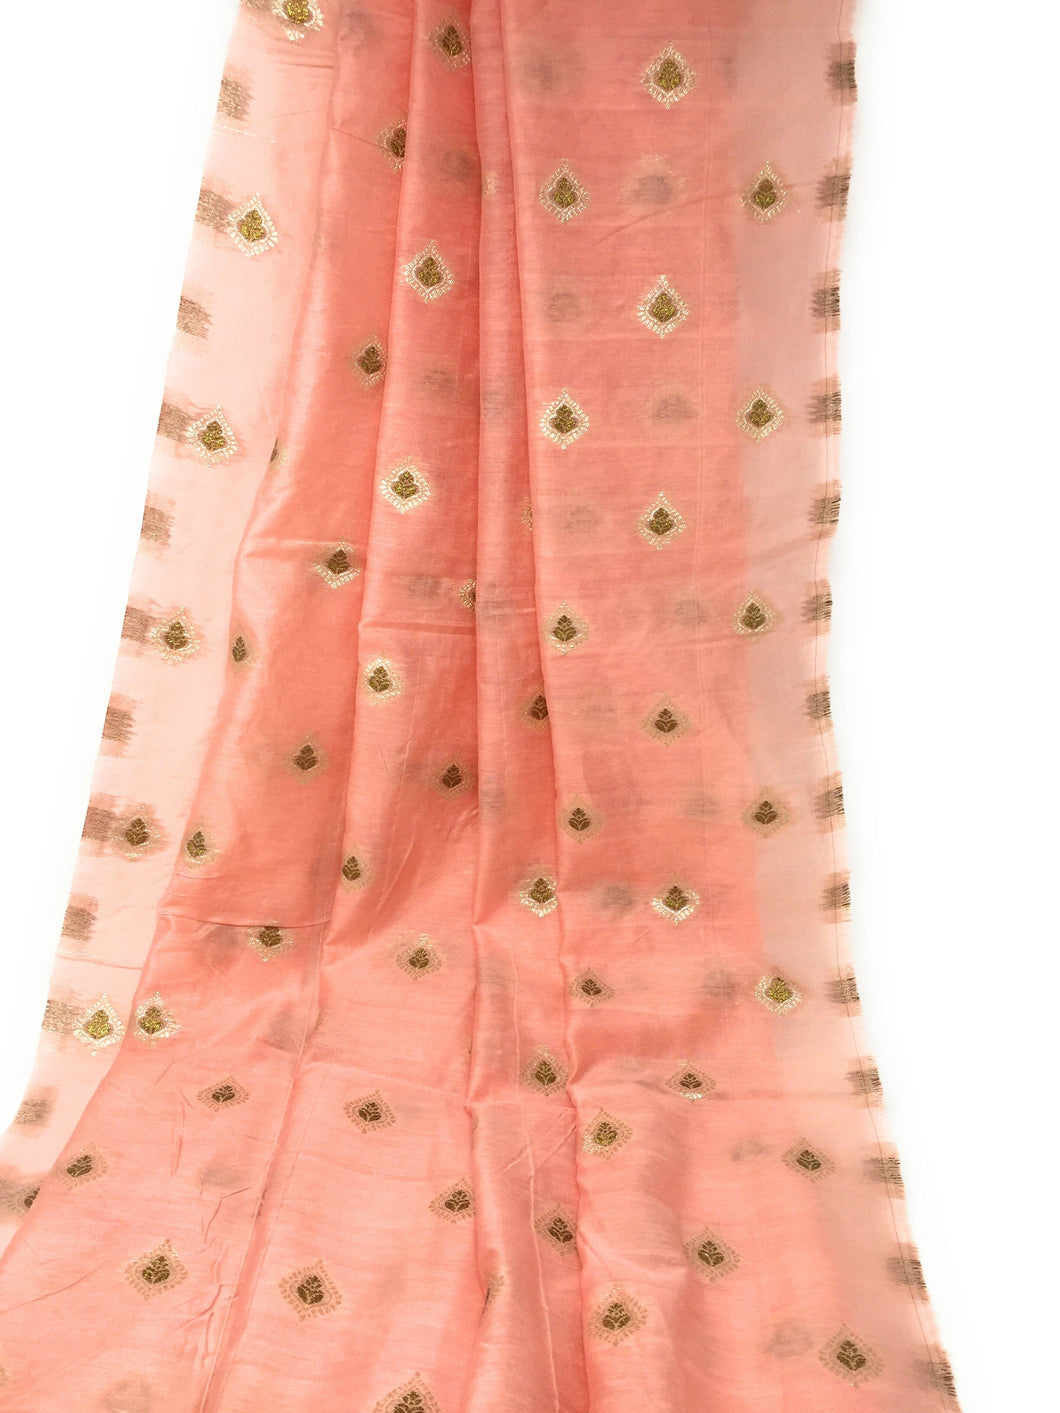 Light Peach Brocade Fabric, Gold Bronze Work